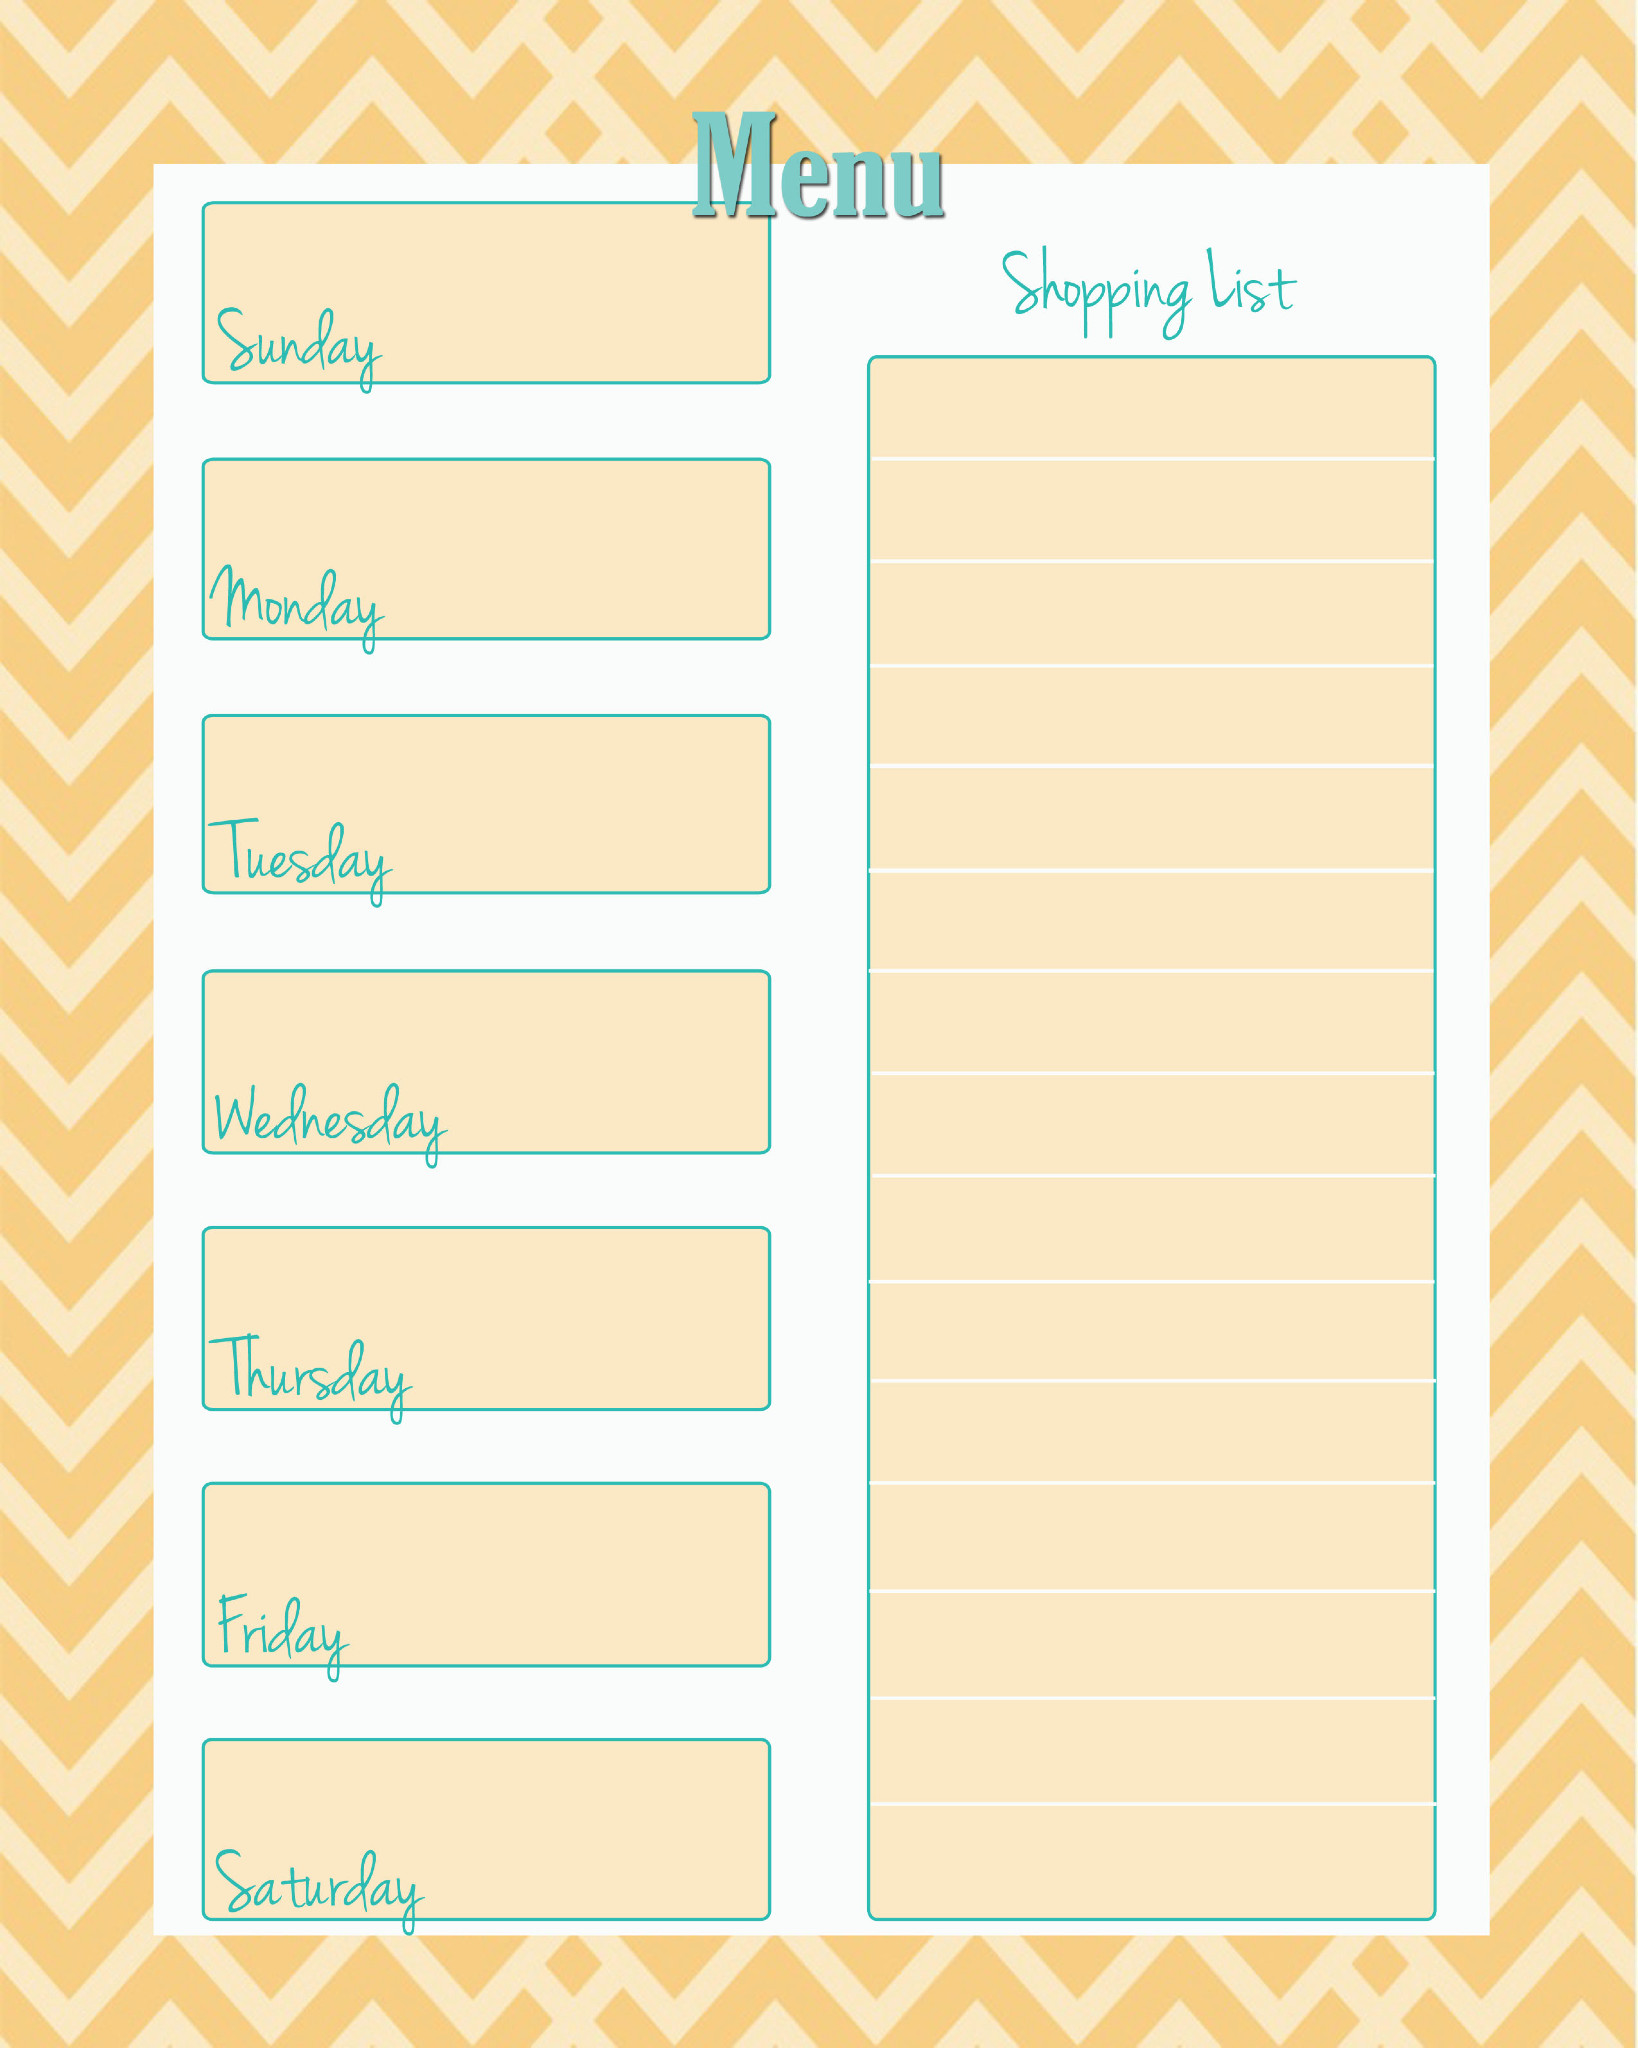 Weekly Menu Planner For One